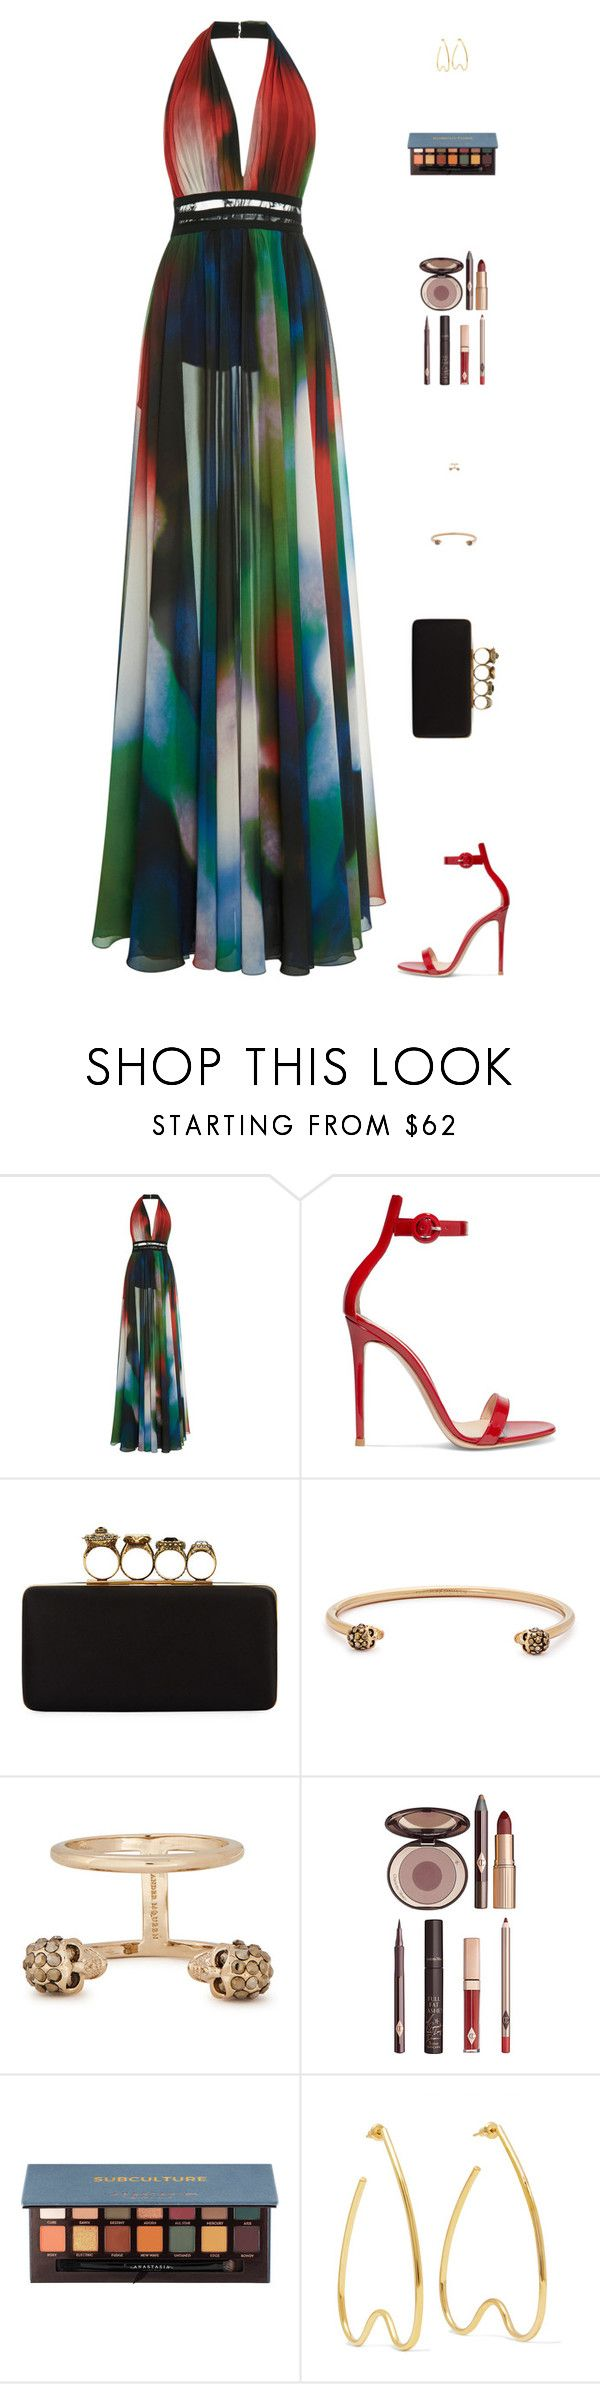 """""""MC"""" by mdmsb on Polyvore featuring Elie Saab, Gianvito Rossi, Alexander McQueen, Charlotte Tilbury, Anastasia Beverly Hills and Simone Rocha"""